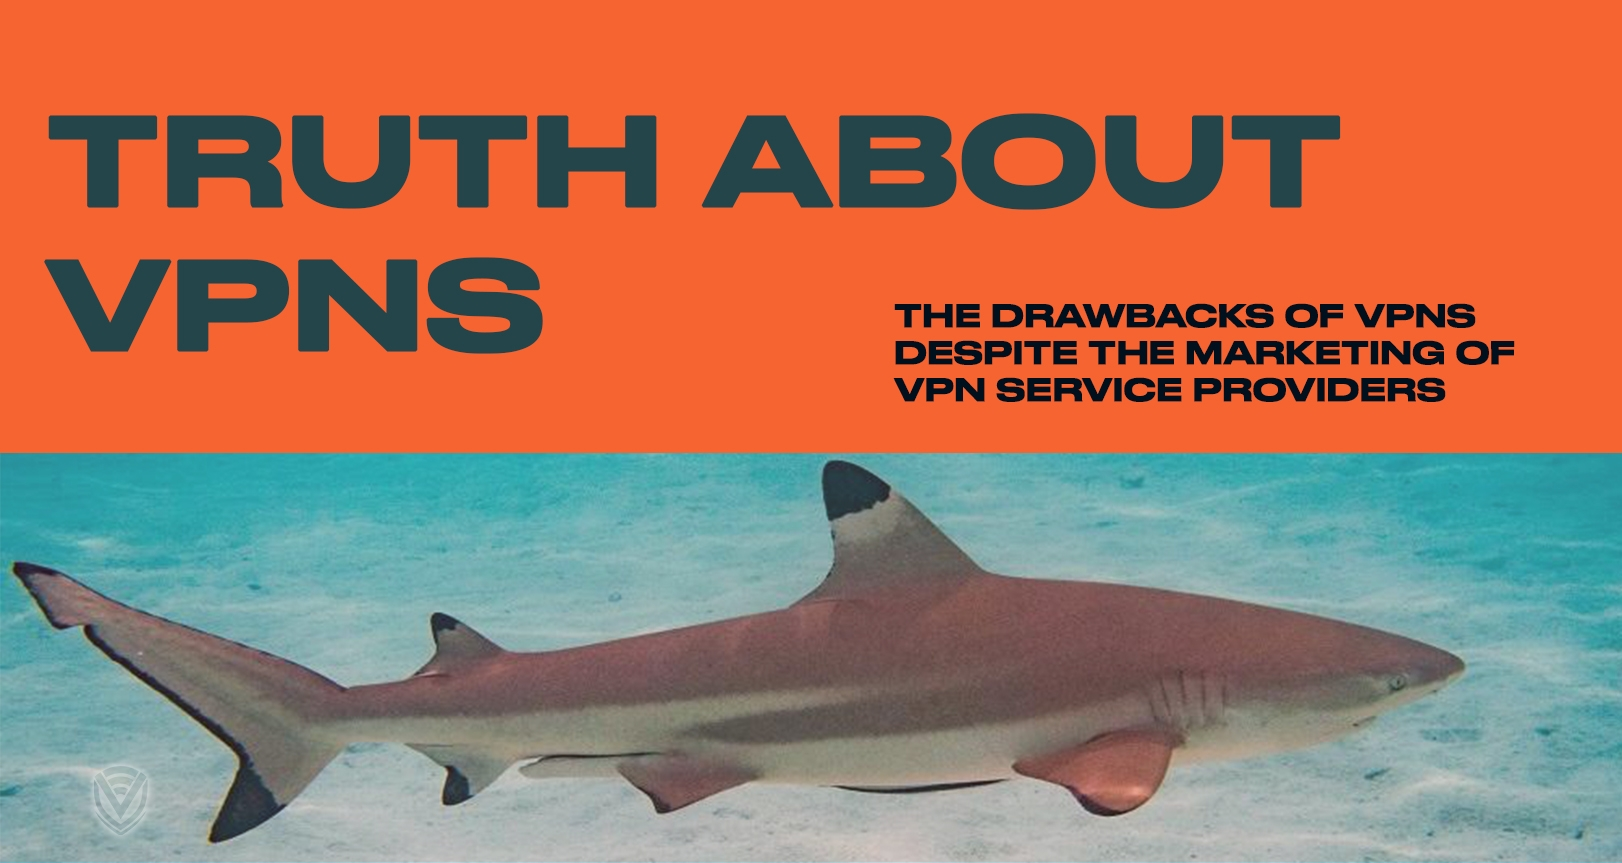 Truth about VPNs